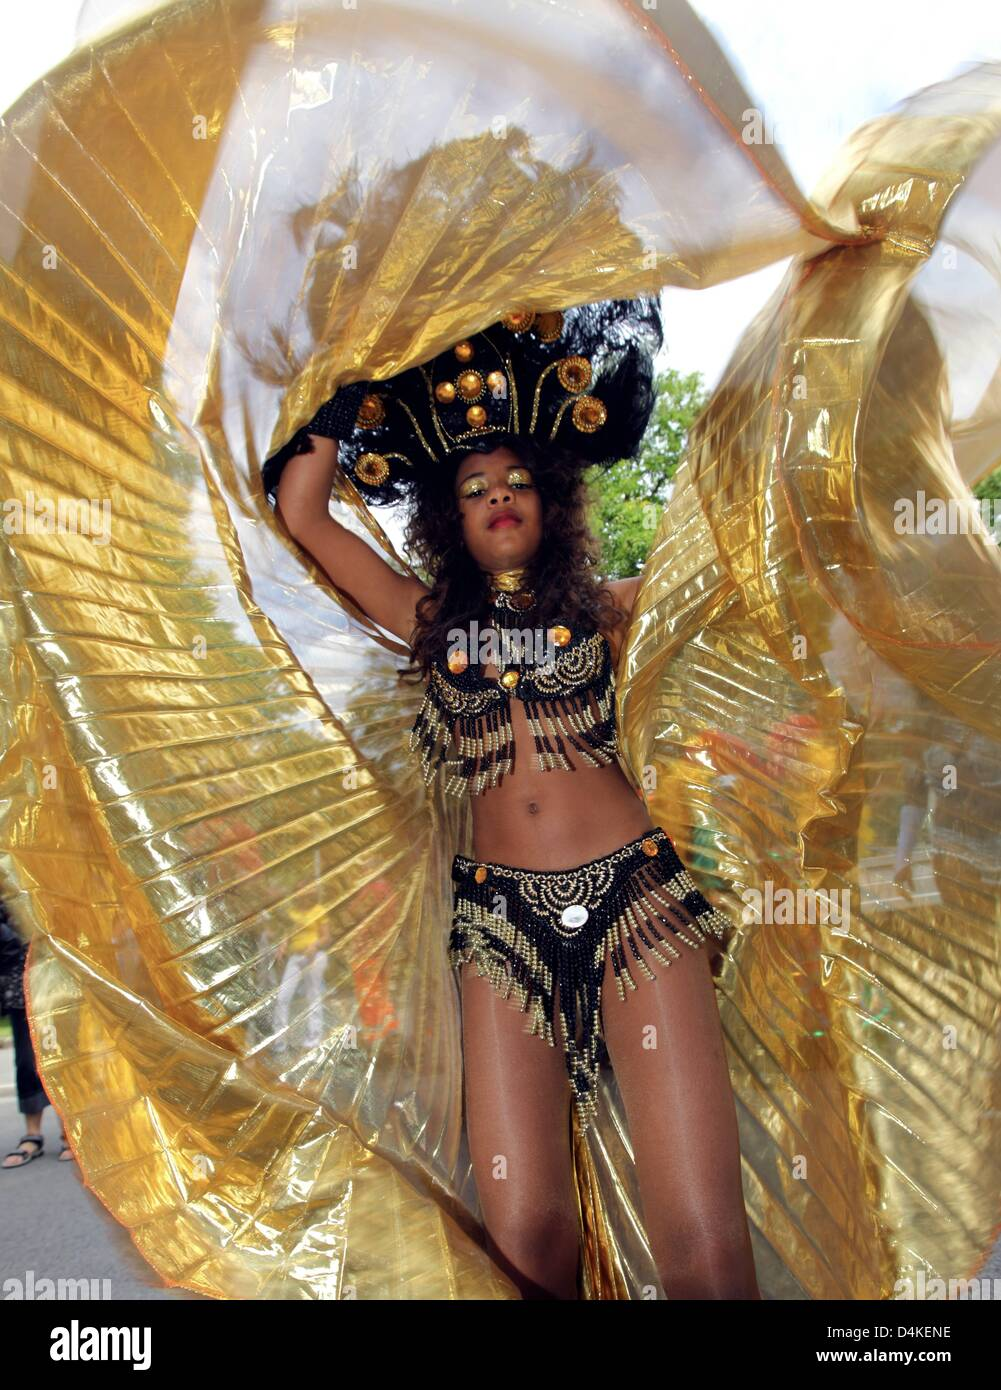 A female samba dancer performs during the Samba parade in the city centre of Coburg, Germany, 12 July 2009. Organisers - Stock Image